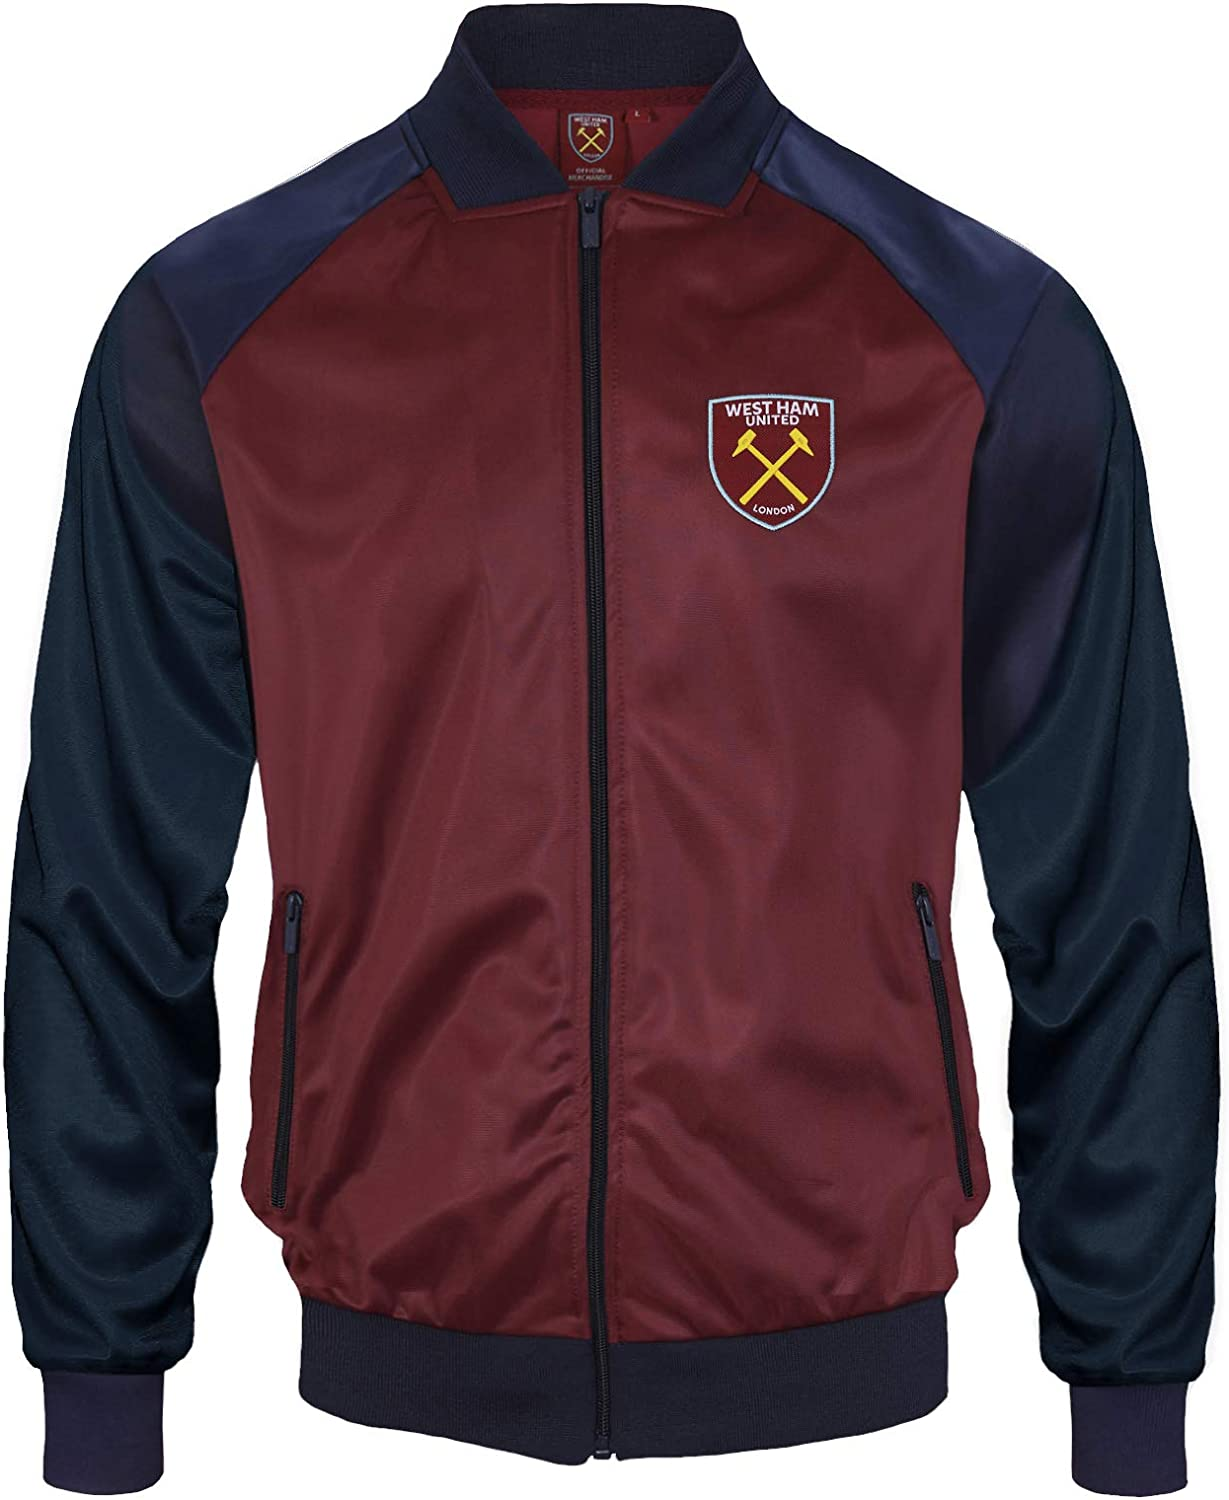 West Ham United Fc Official Gift Mens Retro Track Top Jacket Claret 3xl At Amazon Men S Clothing Store